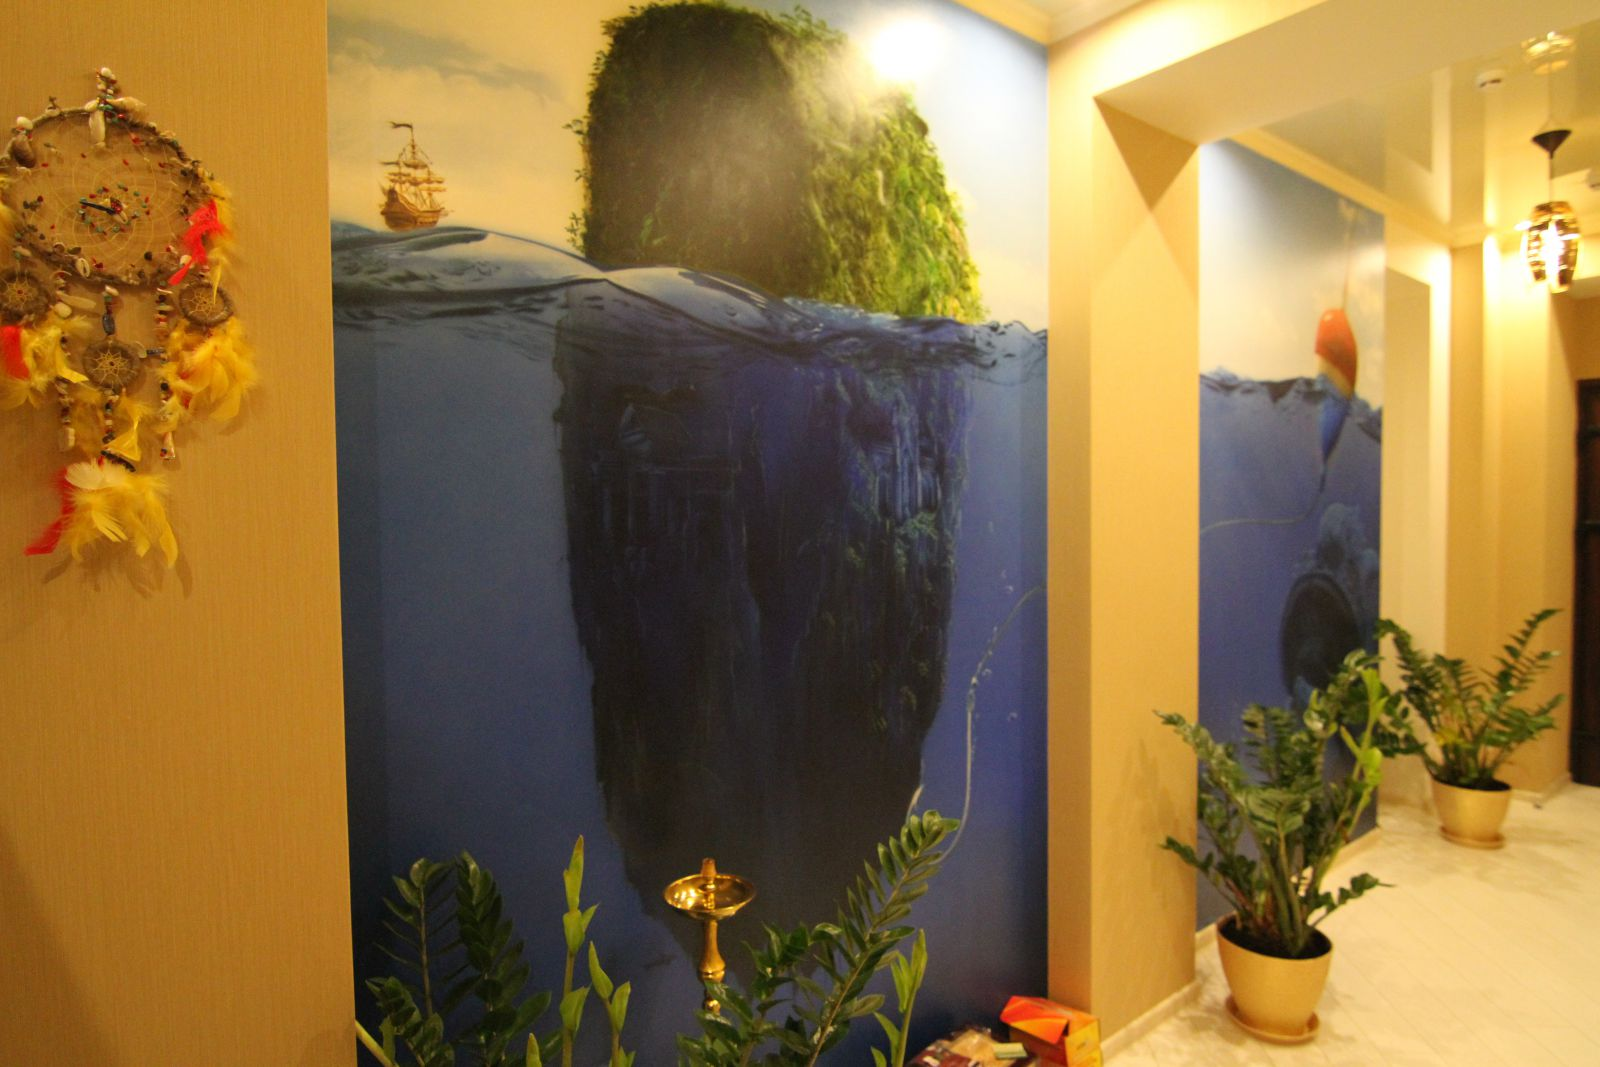 aquarium 03 - Habibulin Azat - Airbrush in Briansk